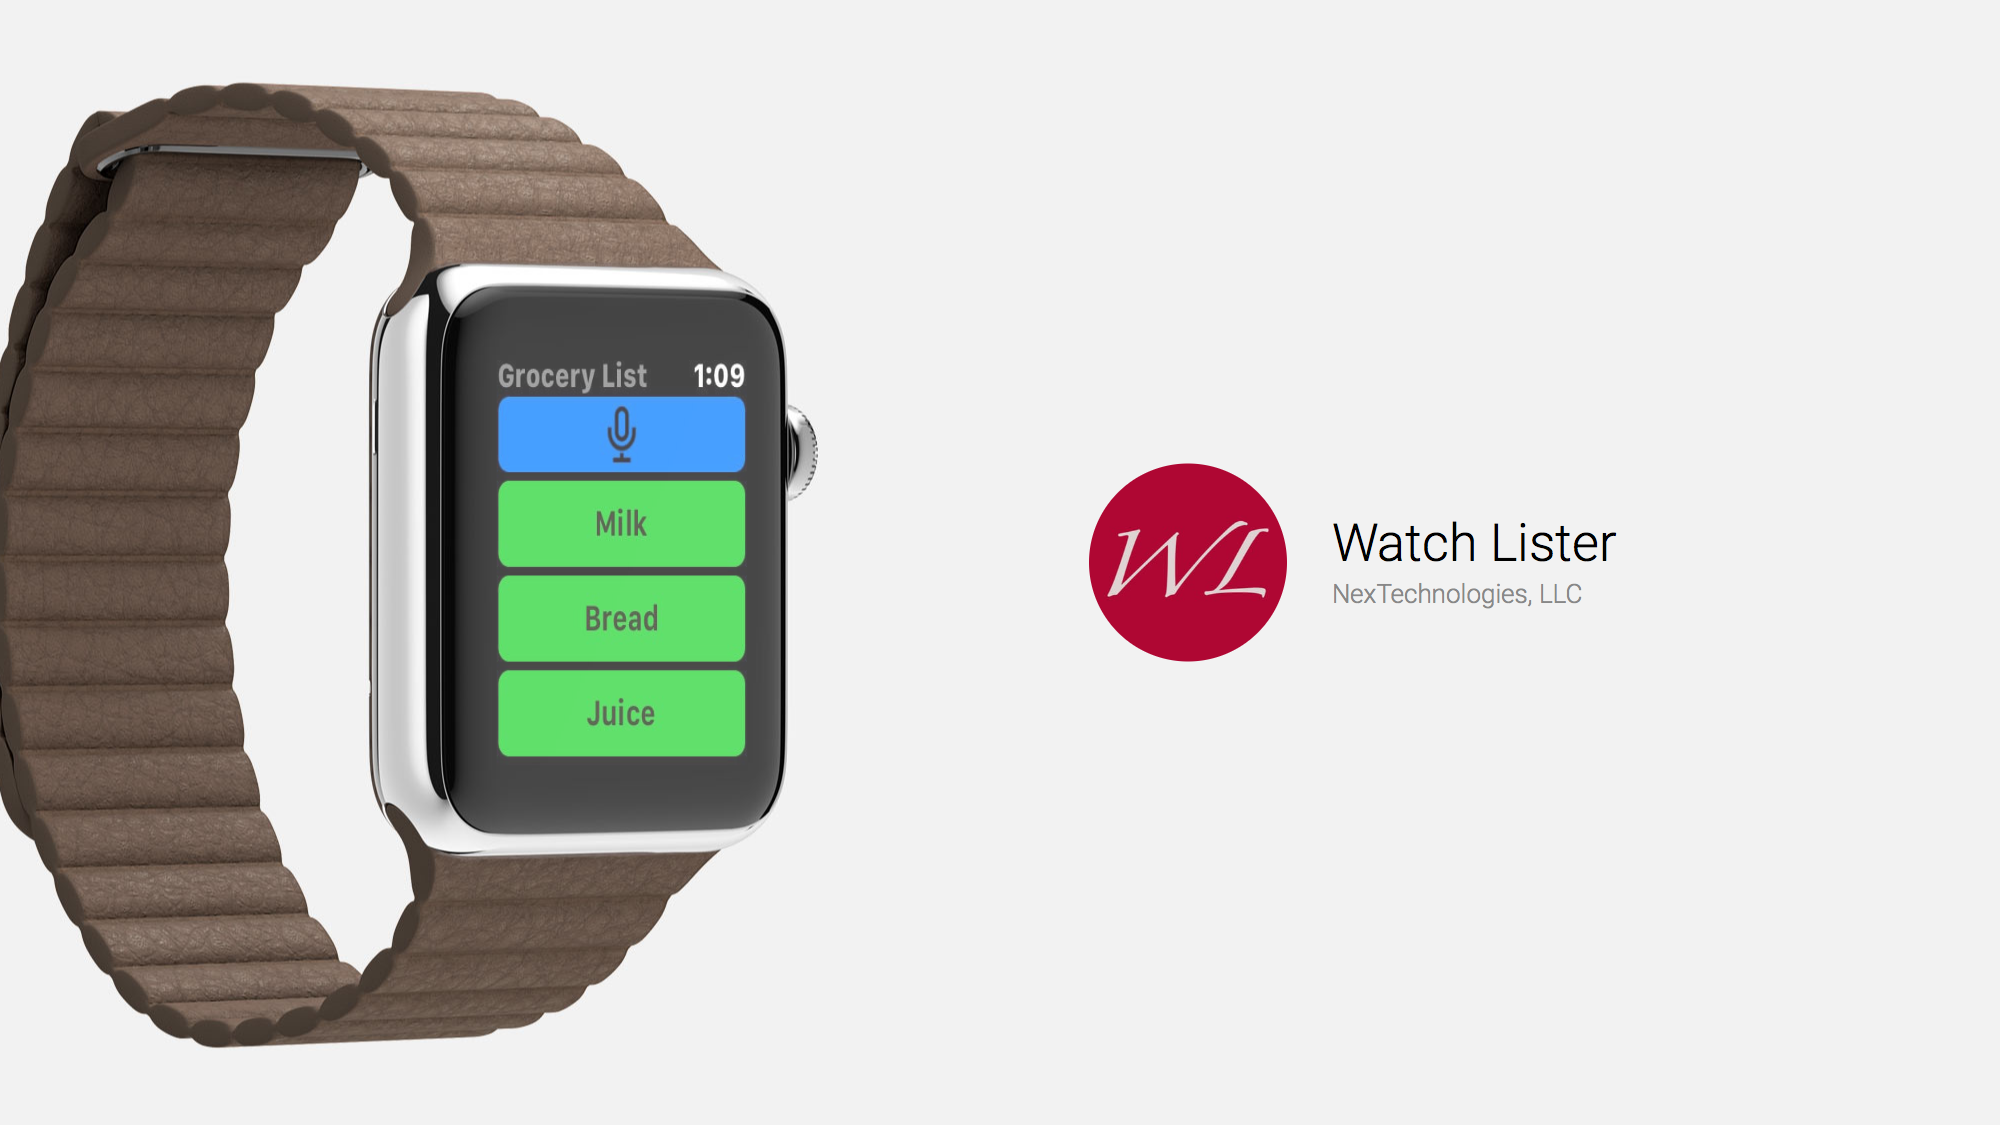 With Watch Lister, Creating Lists on Your Wrist is Easy